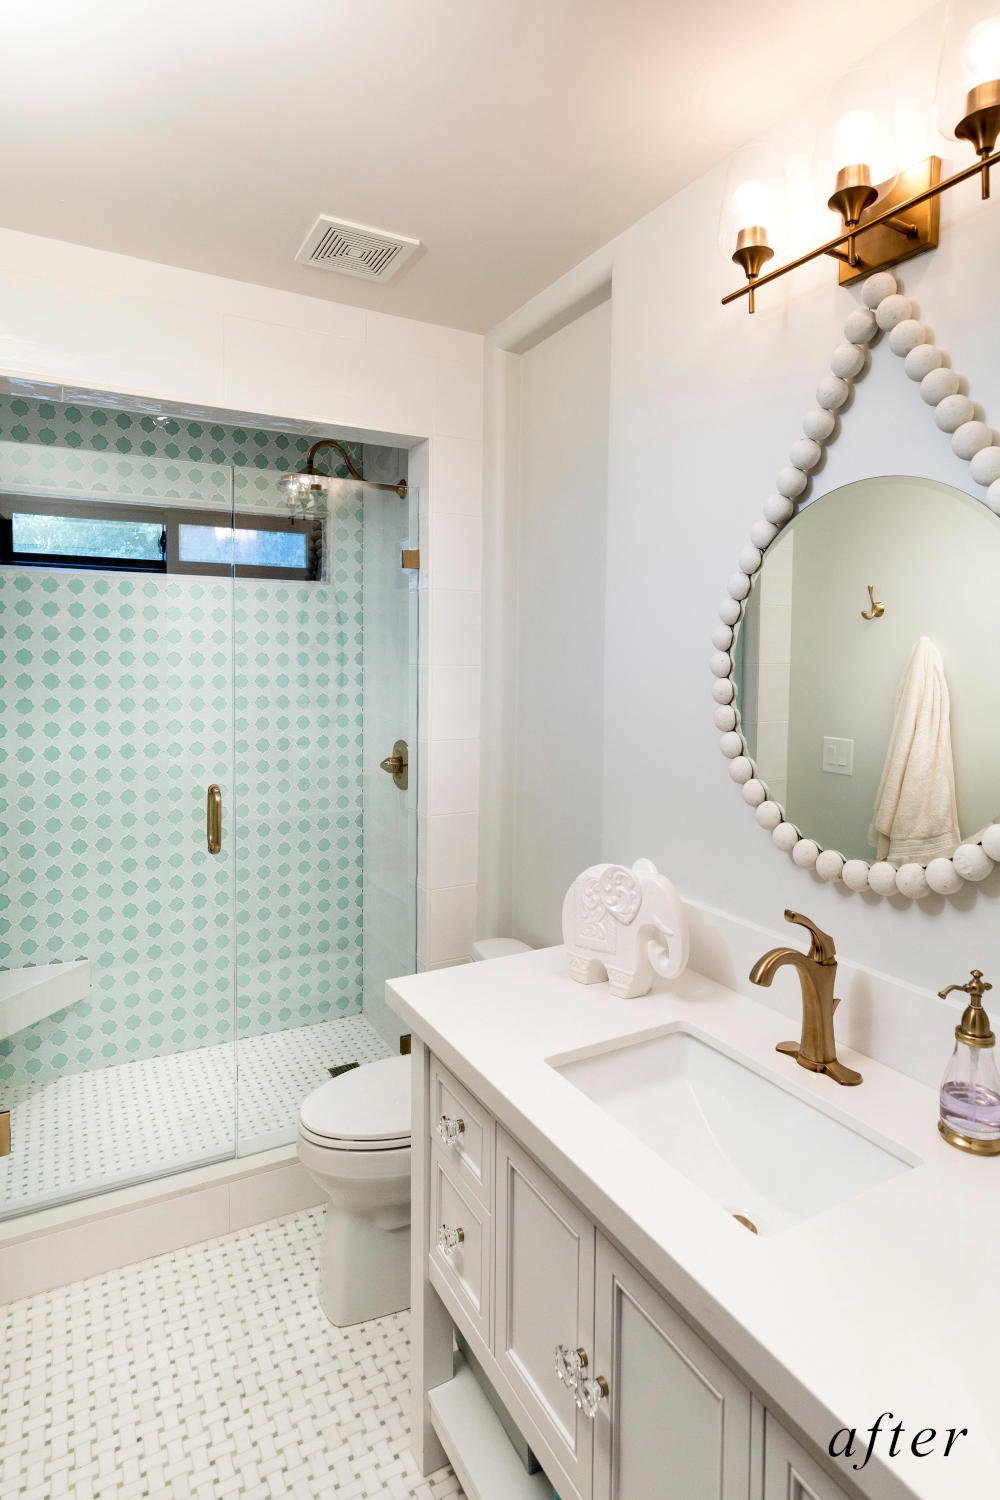 After remodel image: beautiful white marble themed bathroom with walk-in shower with gold accents.